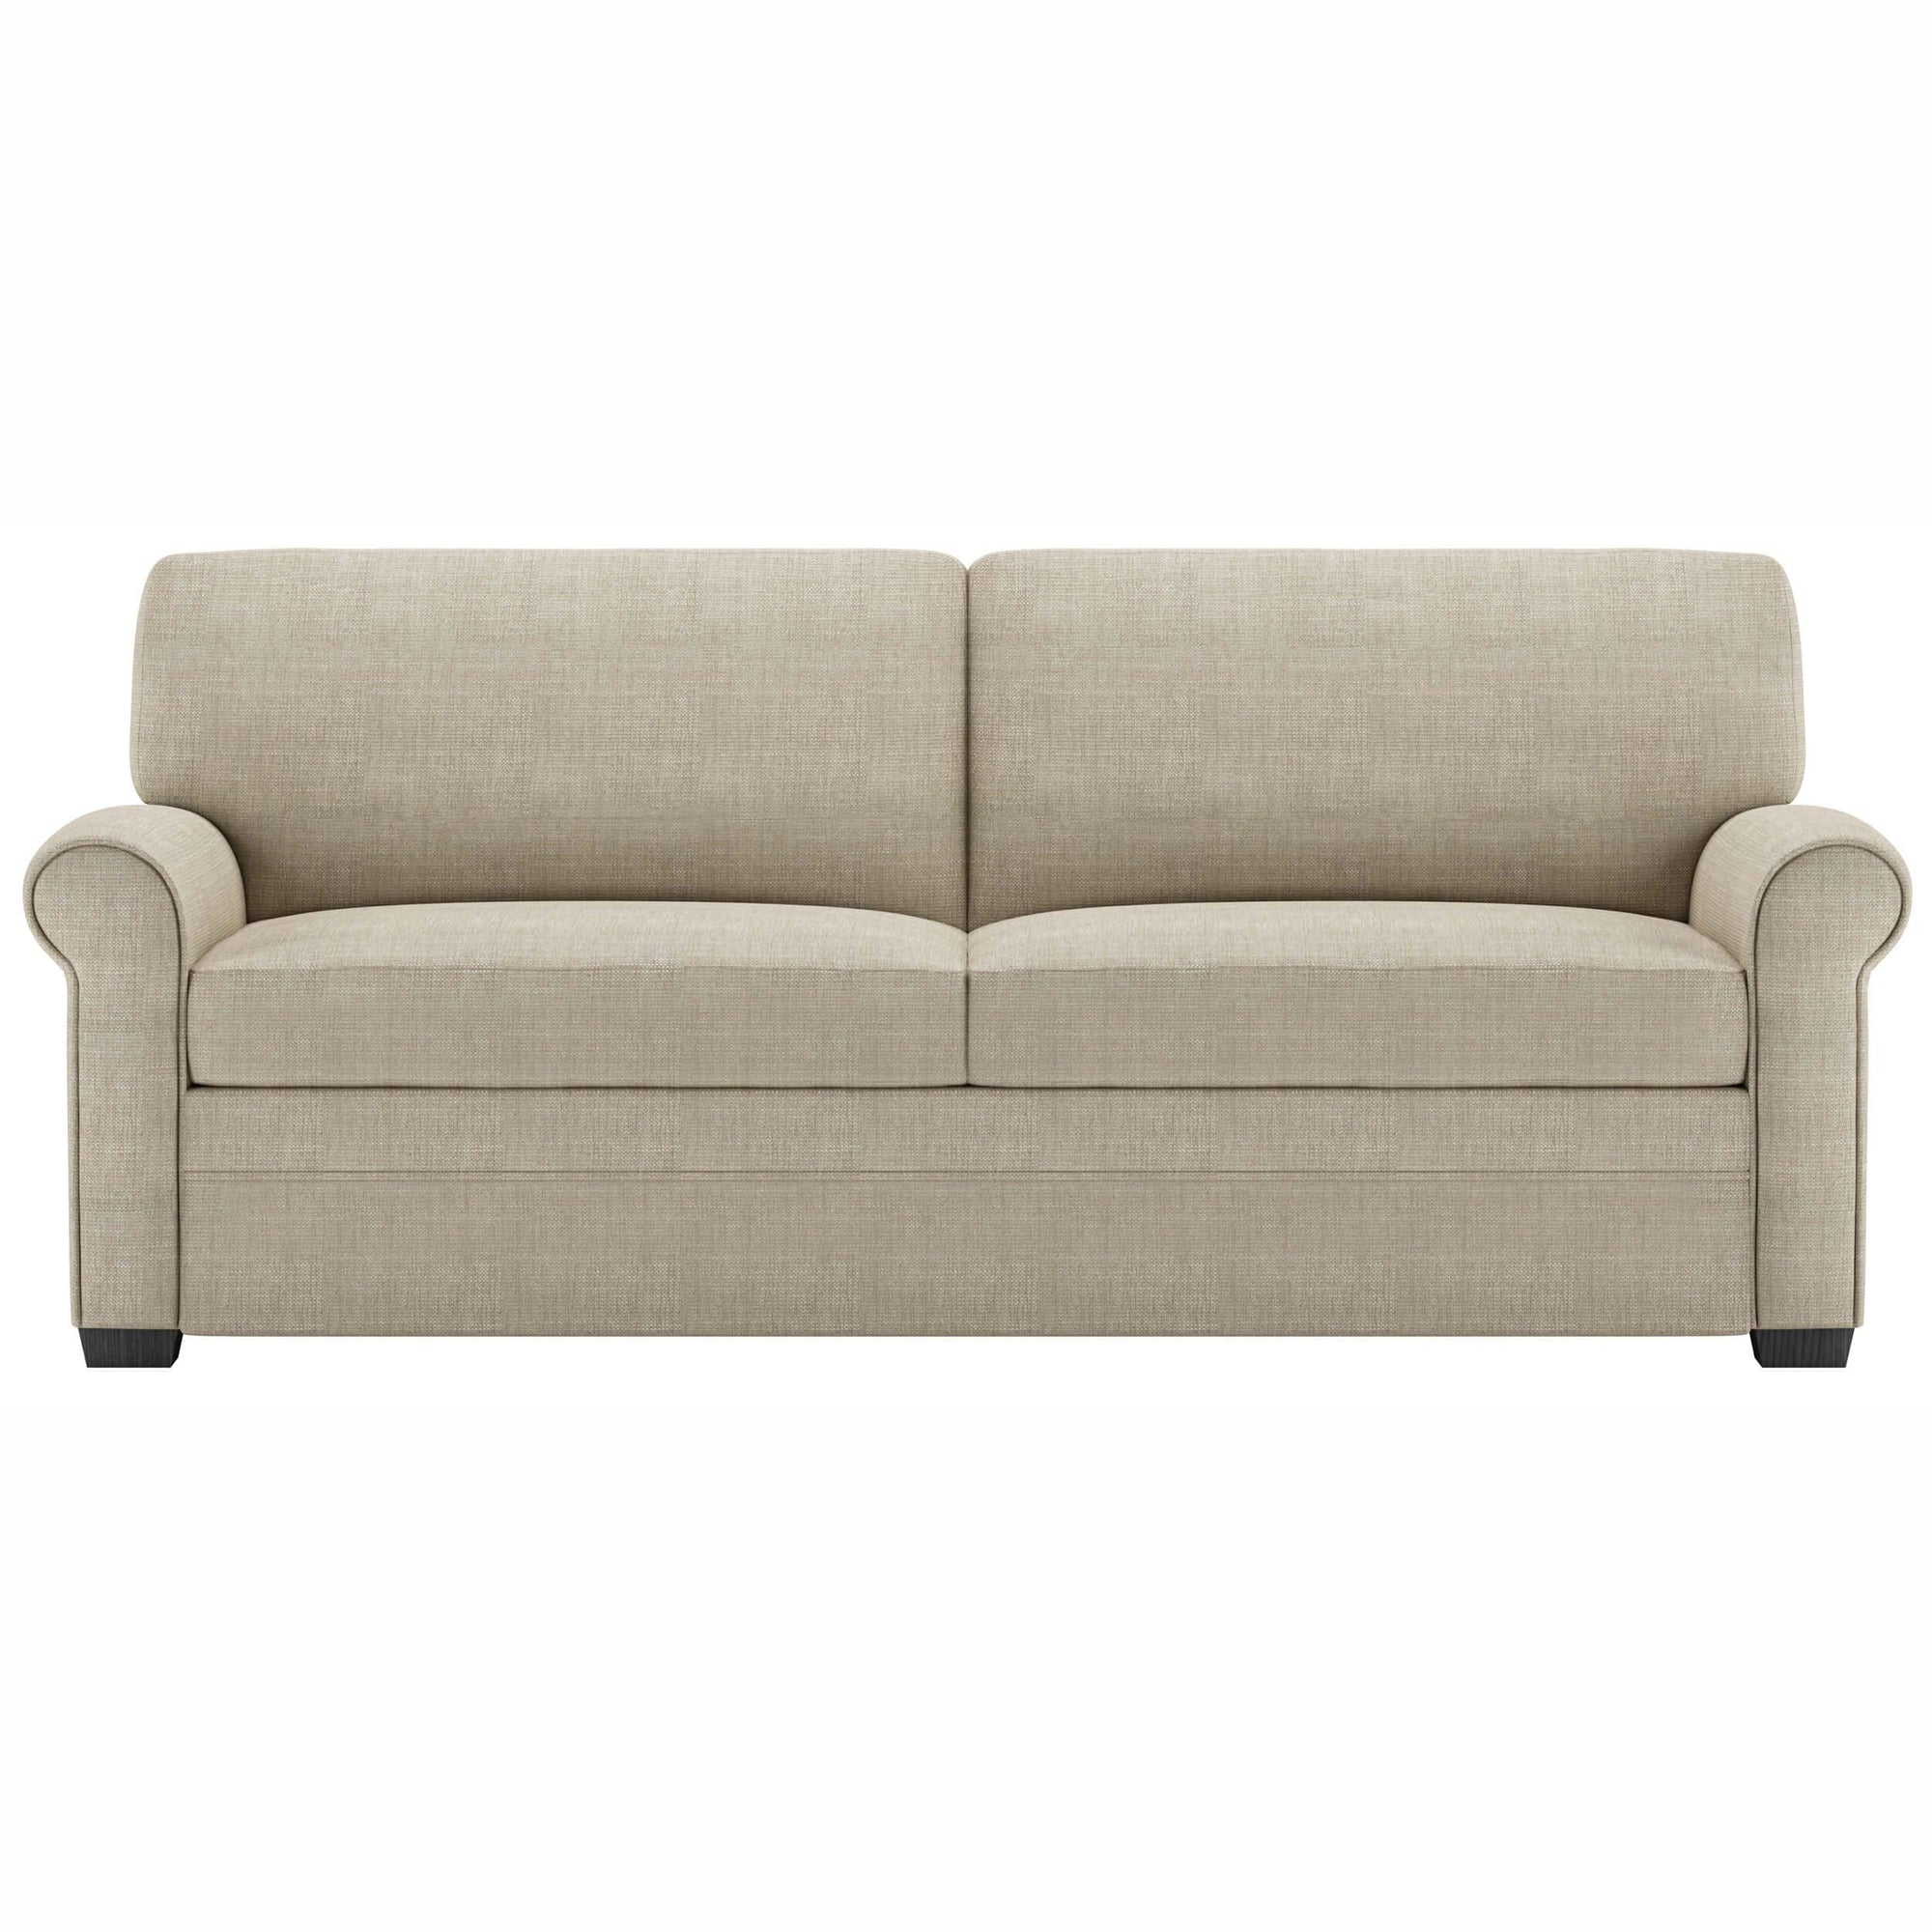 American Leather Gaines Queen Sleeper Sofa, Turkish Blend Cream